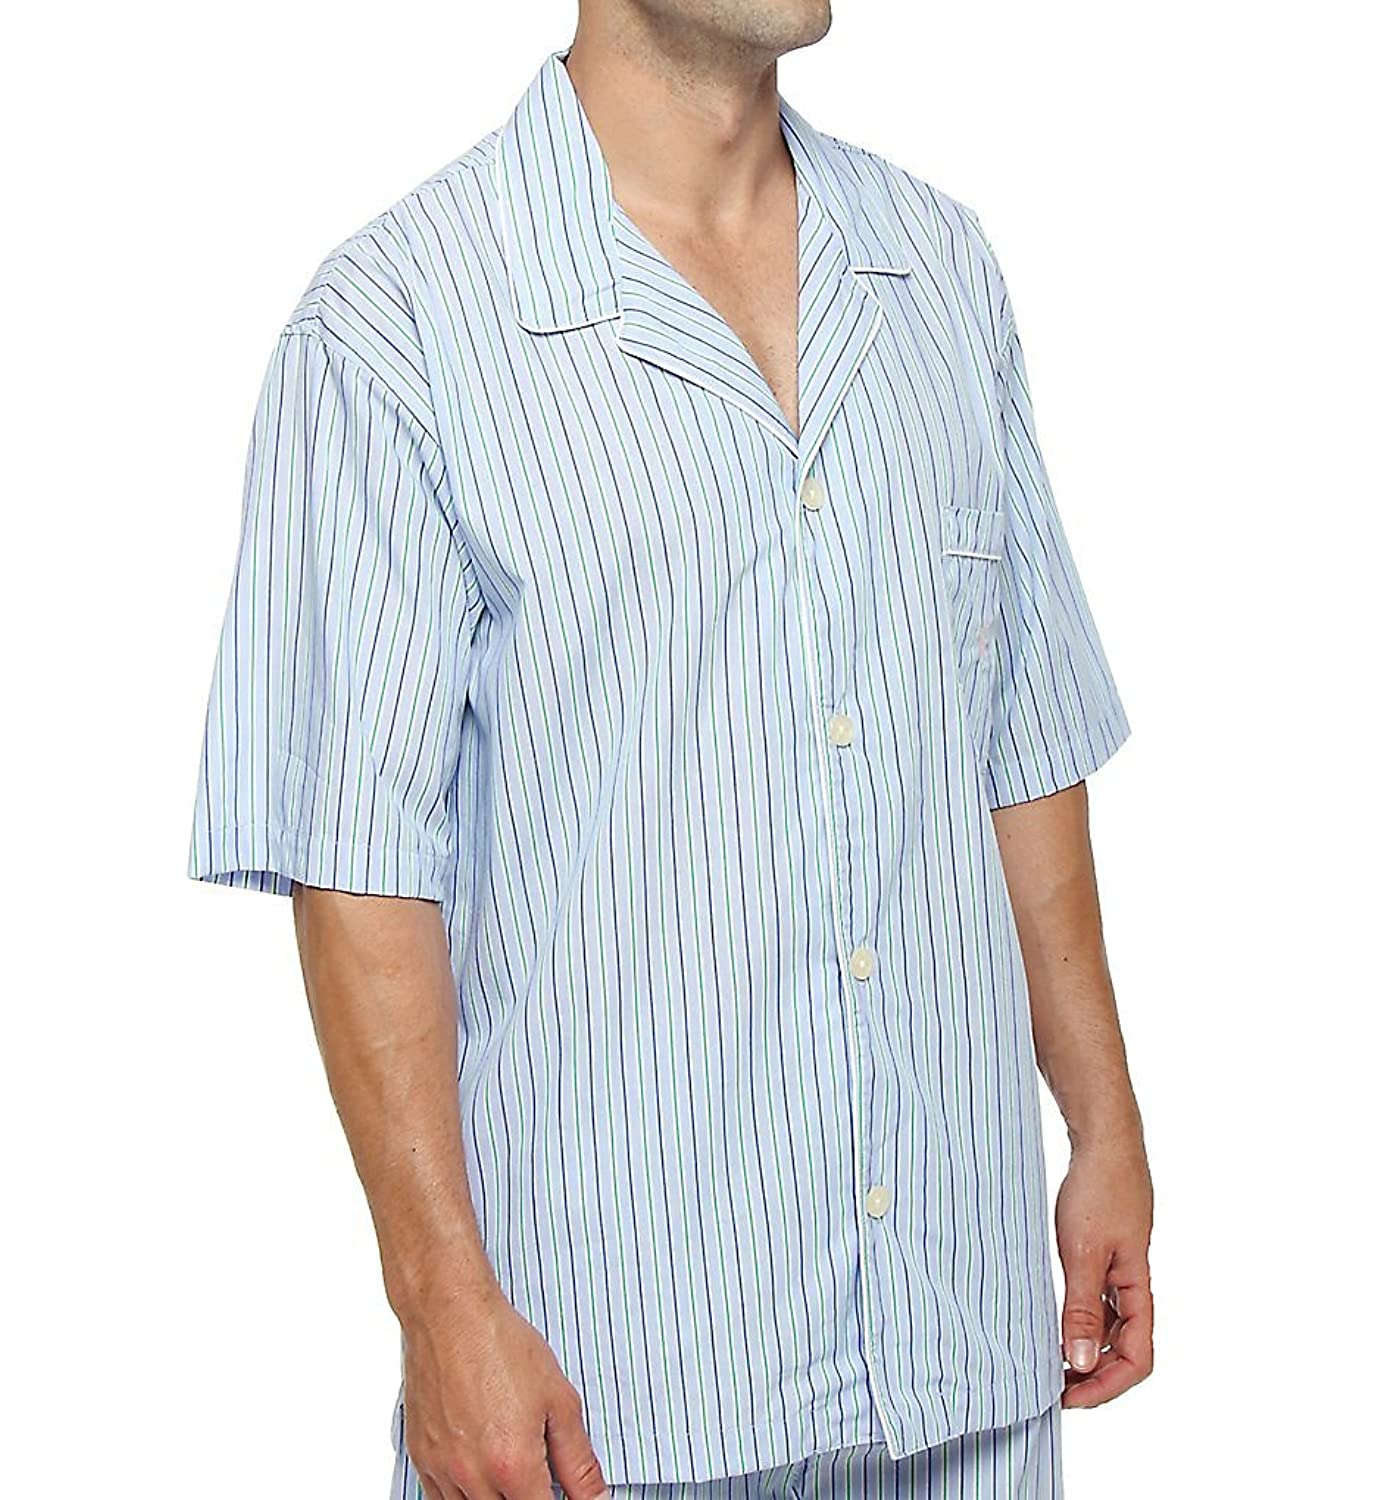 Polo Ralph Lauren 100% Cotton Woven Short Sleeve Sleepwear Top (P757) at Amazon Mens Clothing store: Ralph Lauren Pijama